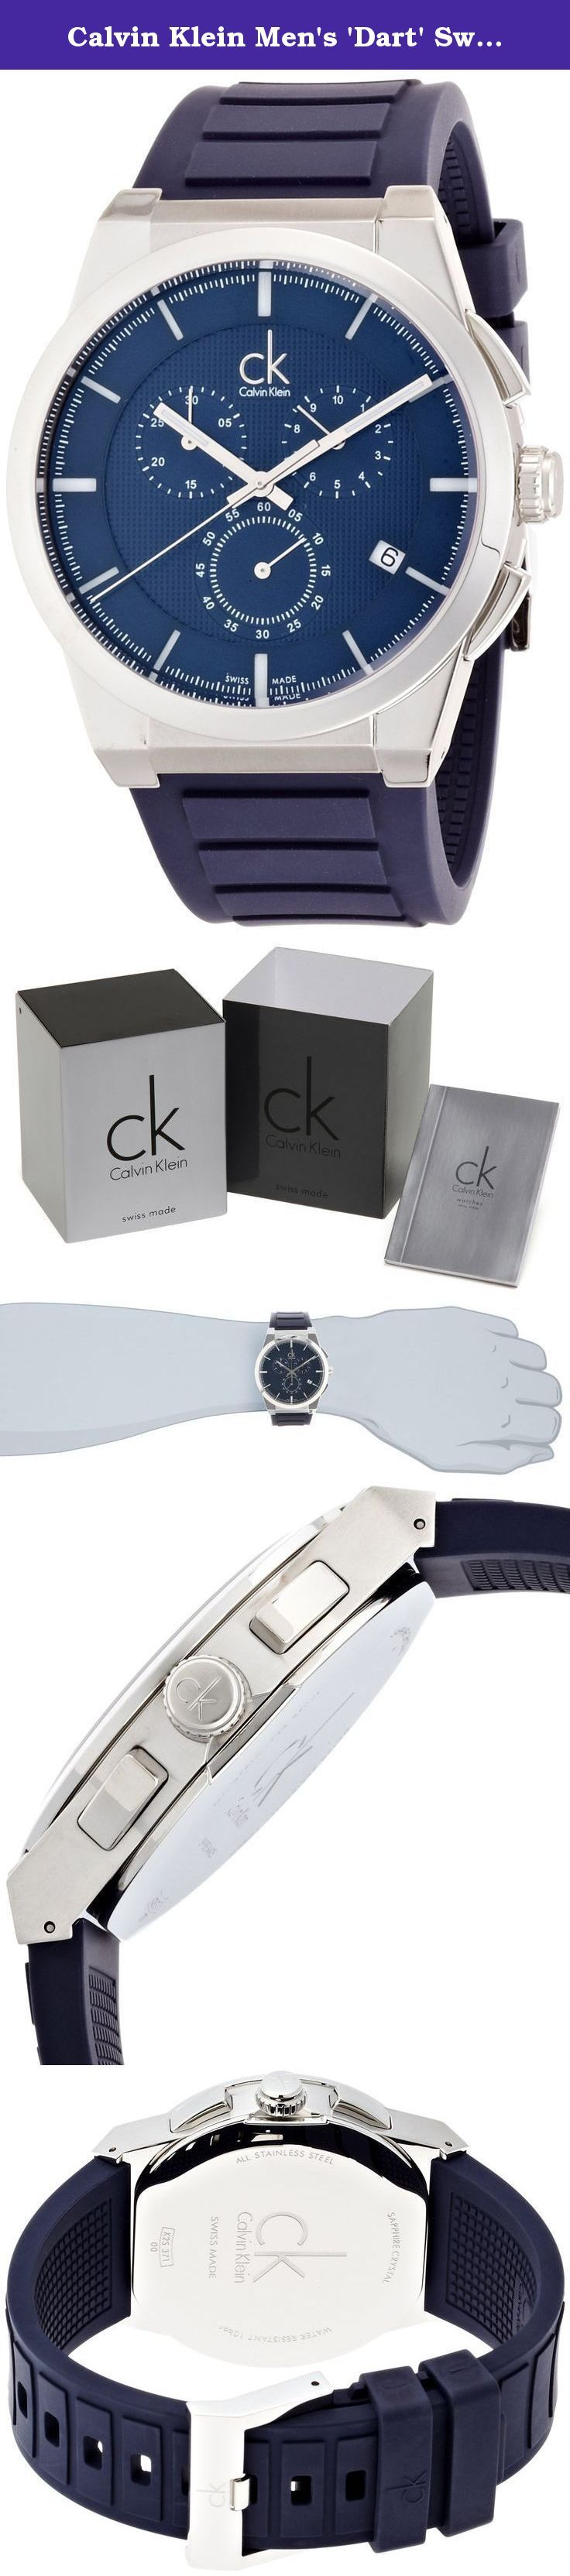 Calvin Klein Men's 'Dart' Swiss Quartz Stainless Steel and Rubber Casual Watch, Color:Blue (Model: K2S371VN). Calvin Klein, Dart, Men's Watch, Stainless Steel Case, Rubber Strap, Swiss Quartz (Battery-Powered), K2S371VN.